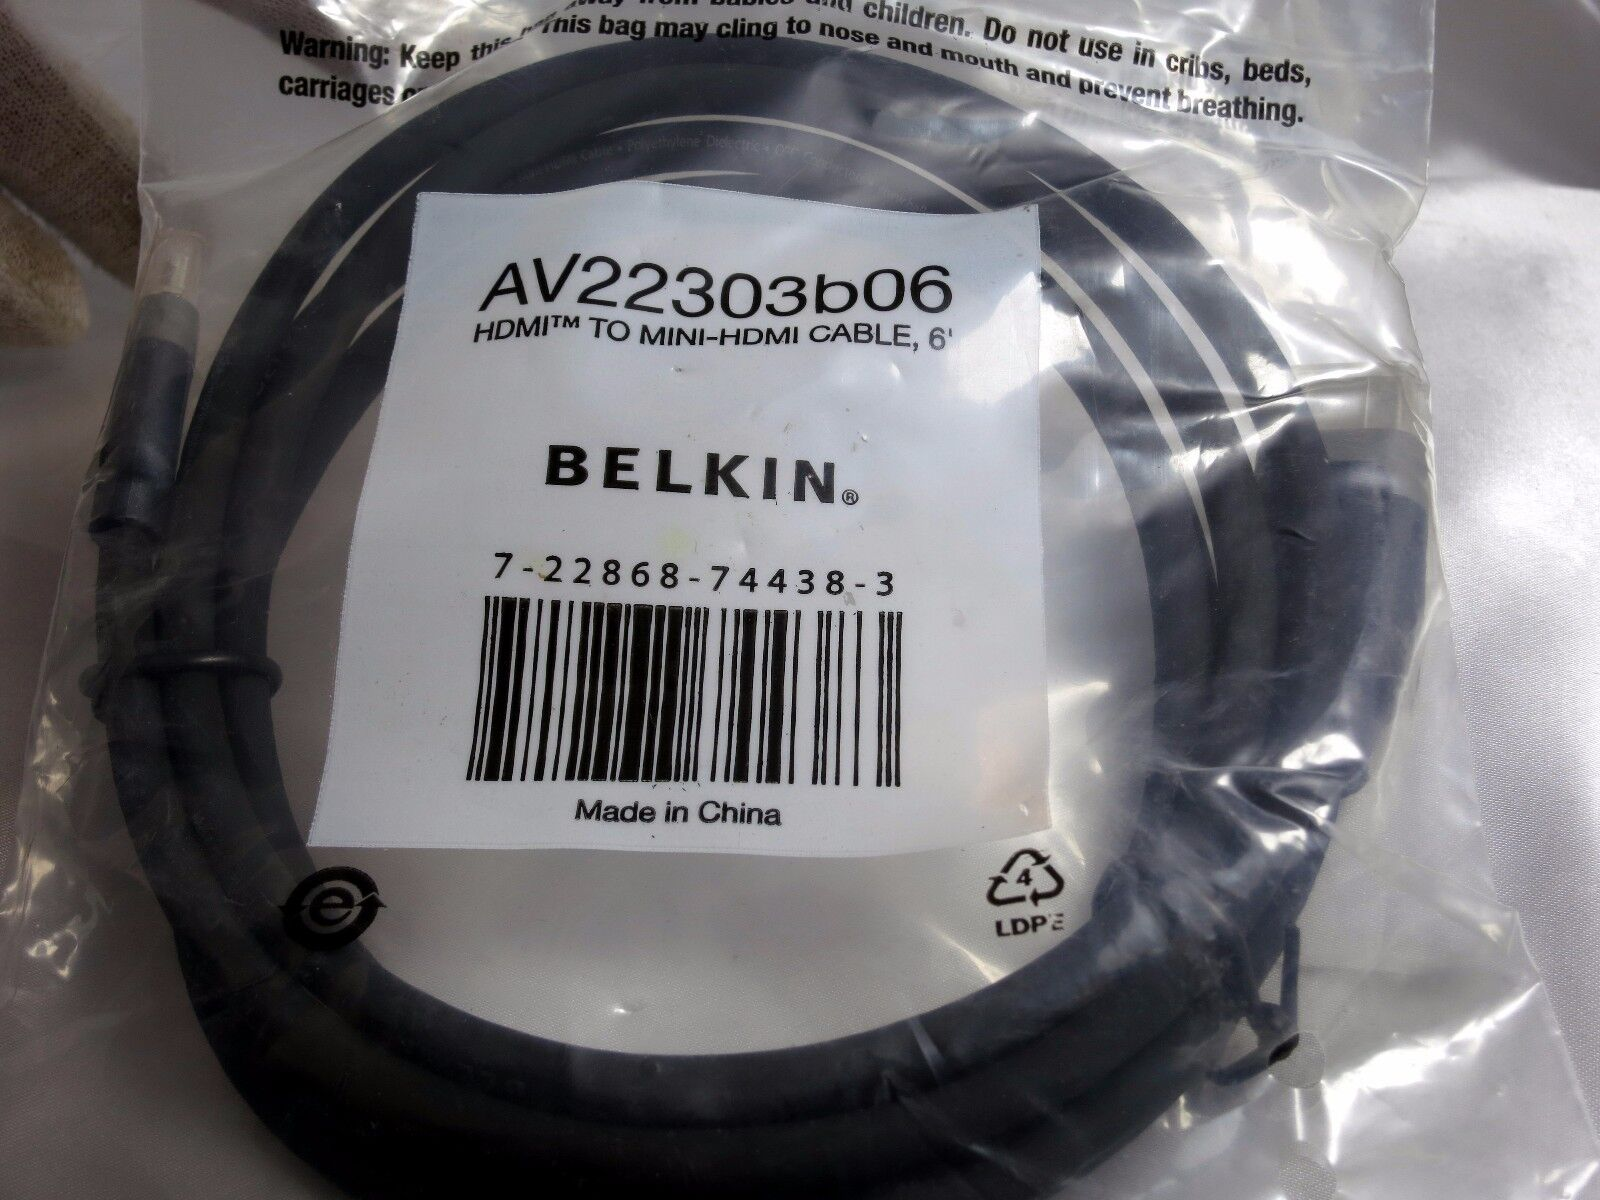 Belkin HDMI to mini-HDMI Cable 6' long ( Type C to A) AV22303B06 TV Camcorder PC